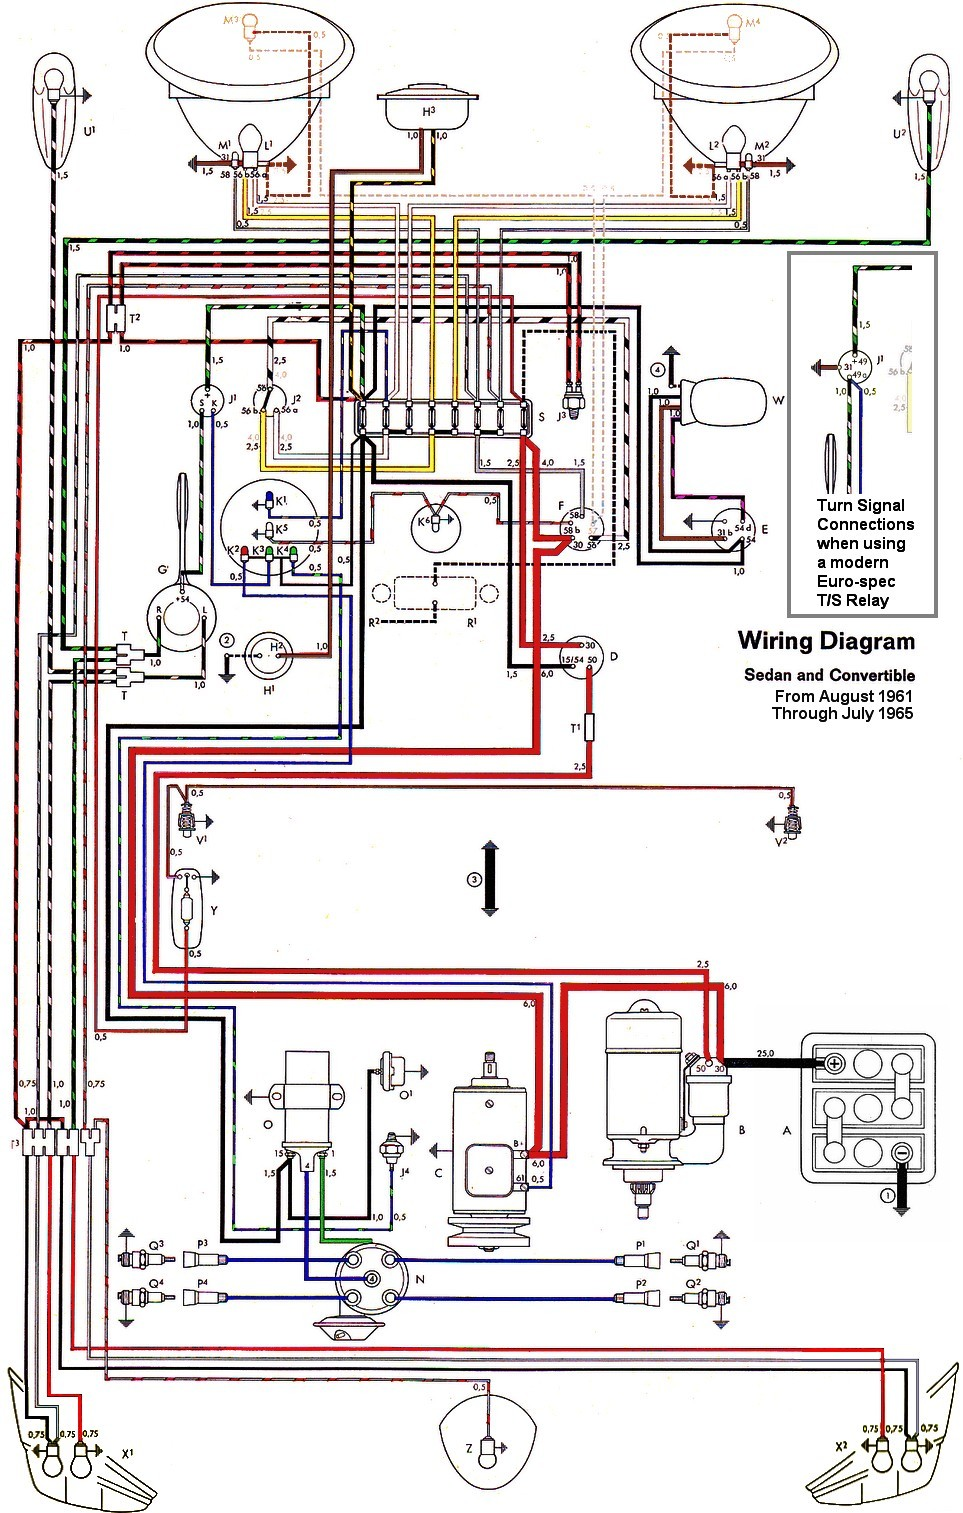 hight resolution of thesamba com type 1 wiring diagrams vw super beetle wiring 1973 vw beetle wiring diagram